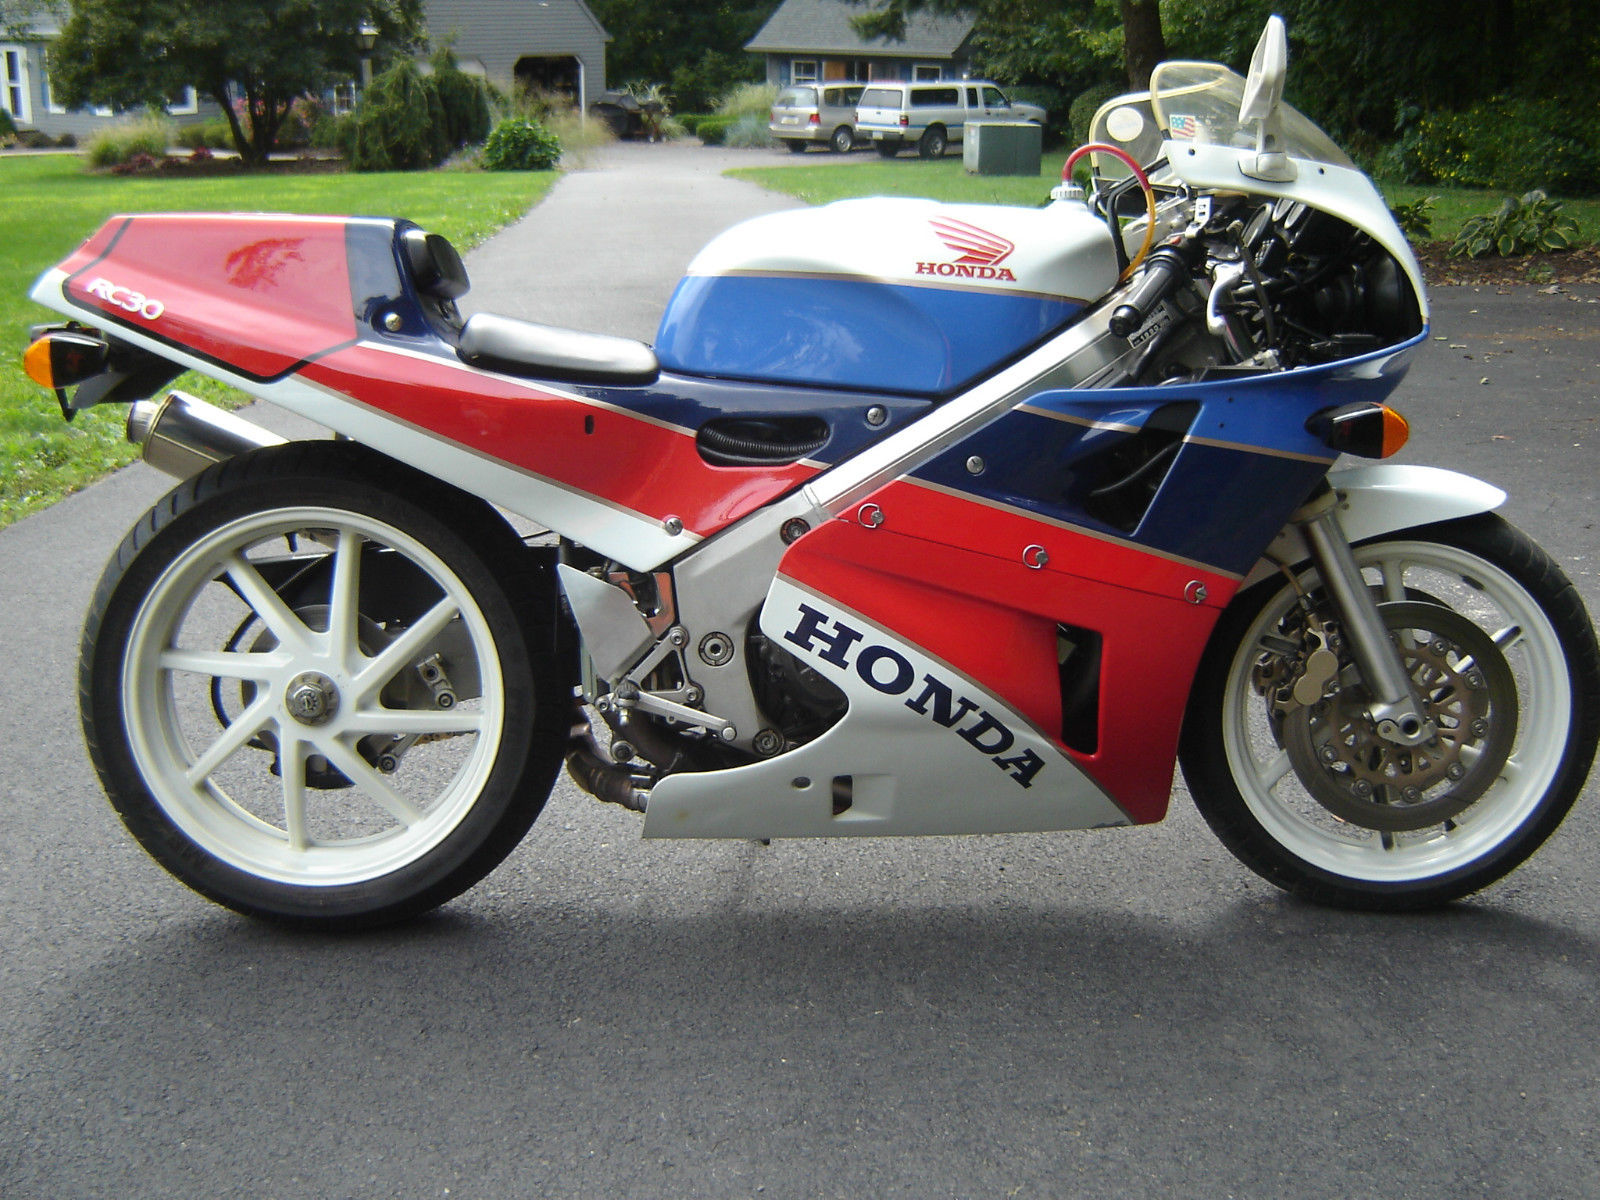 Vfr750 Archives Rare Sportbikes For Sale